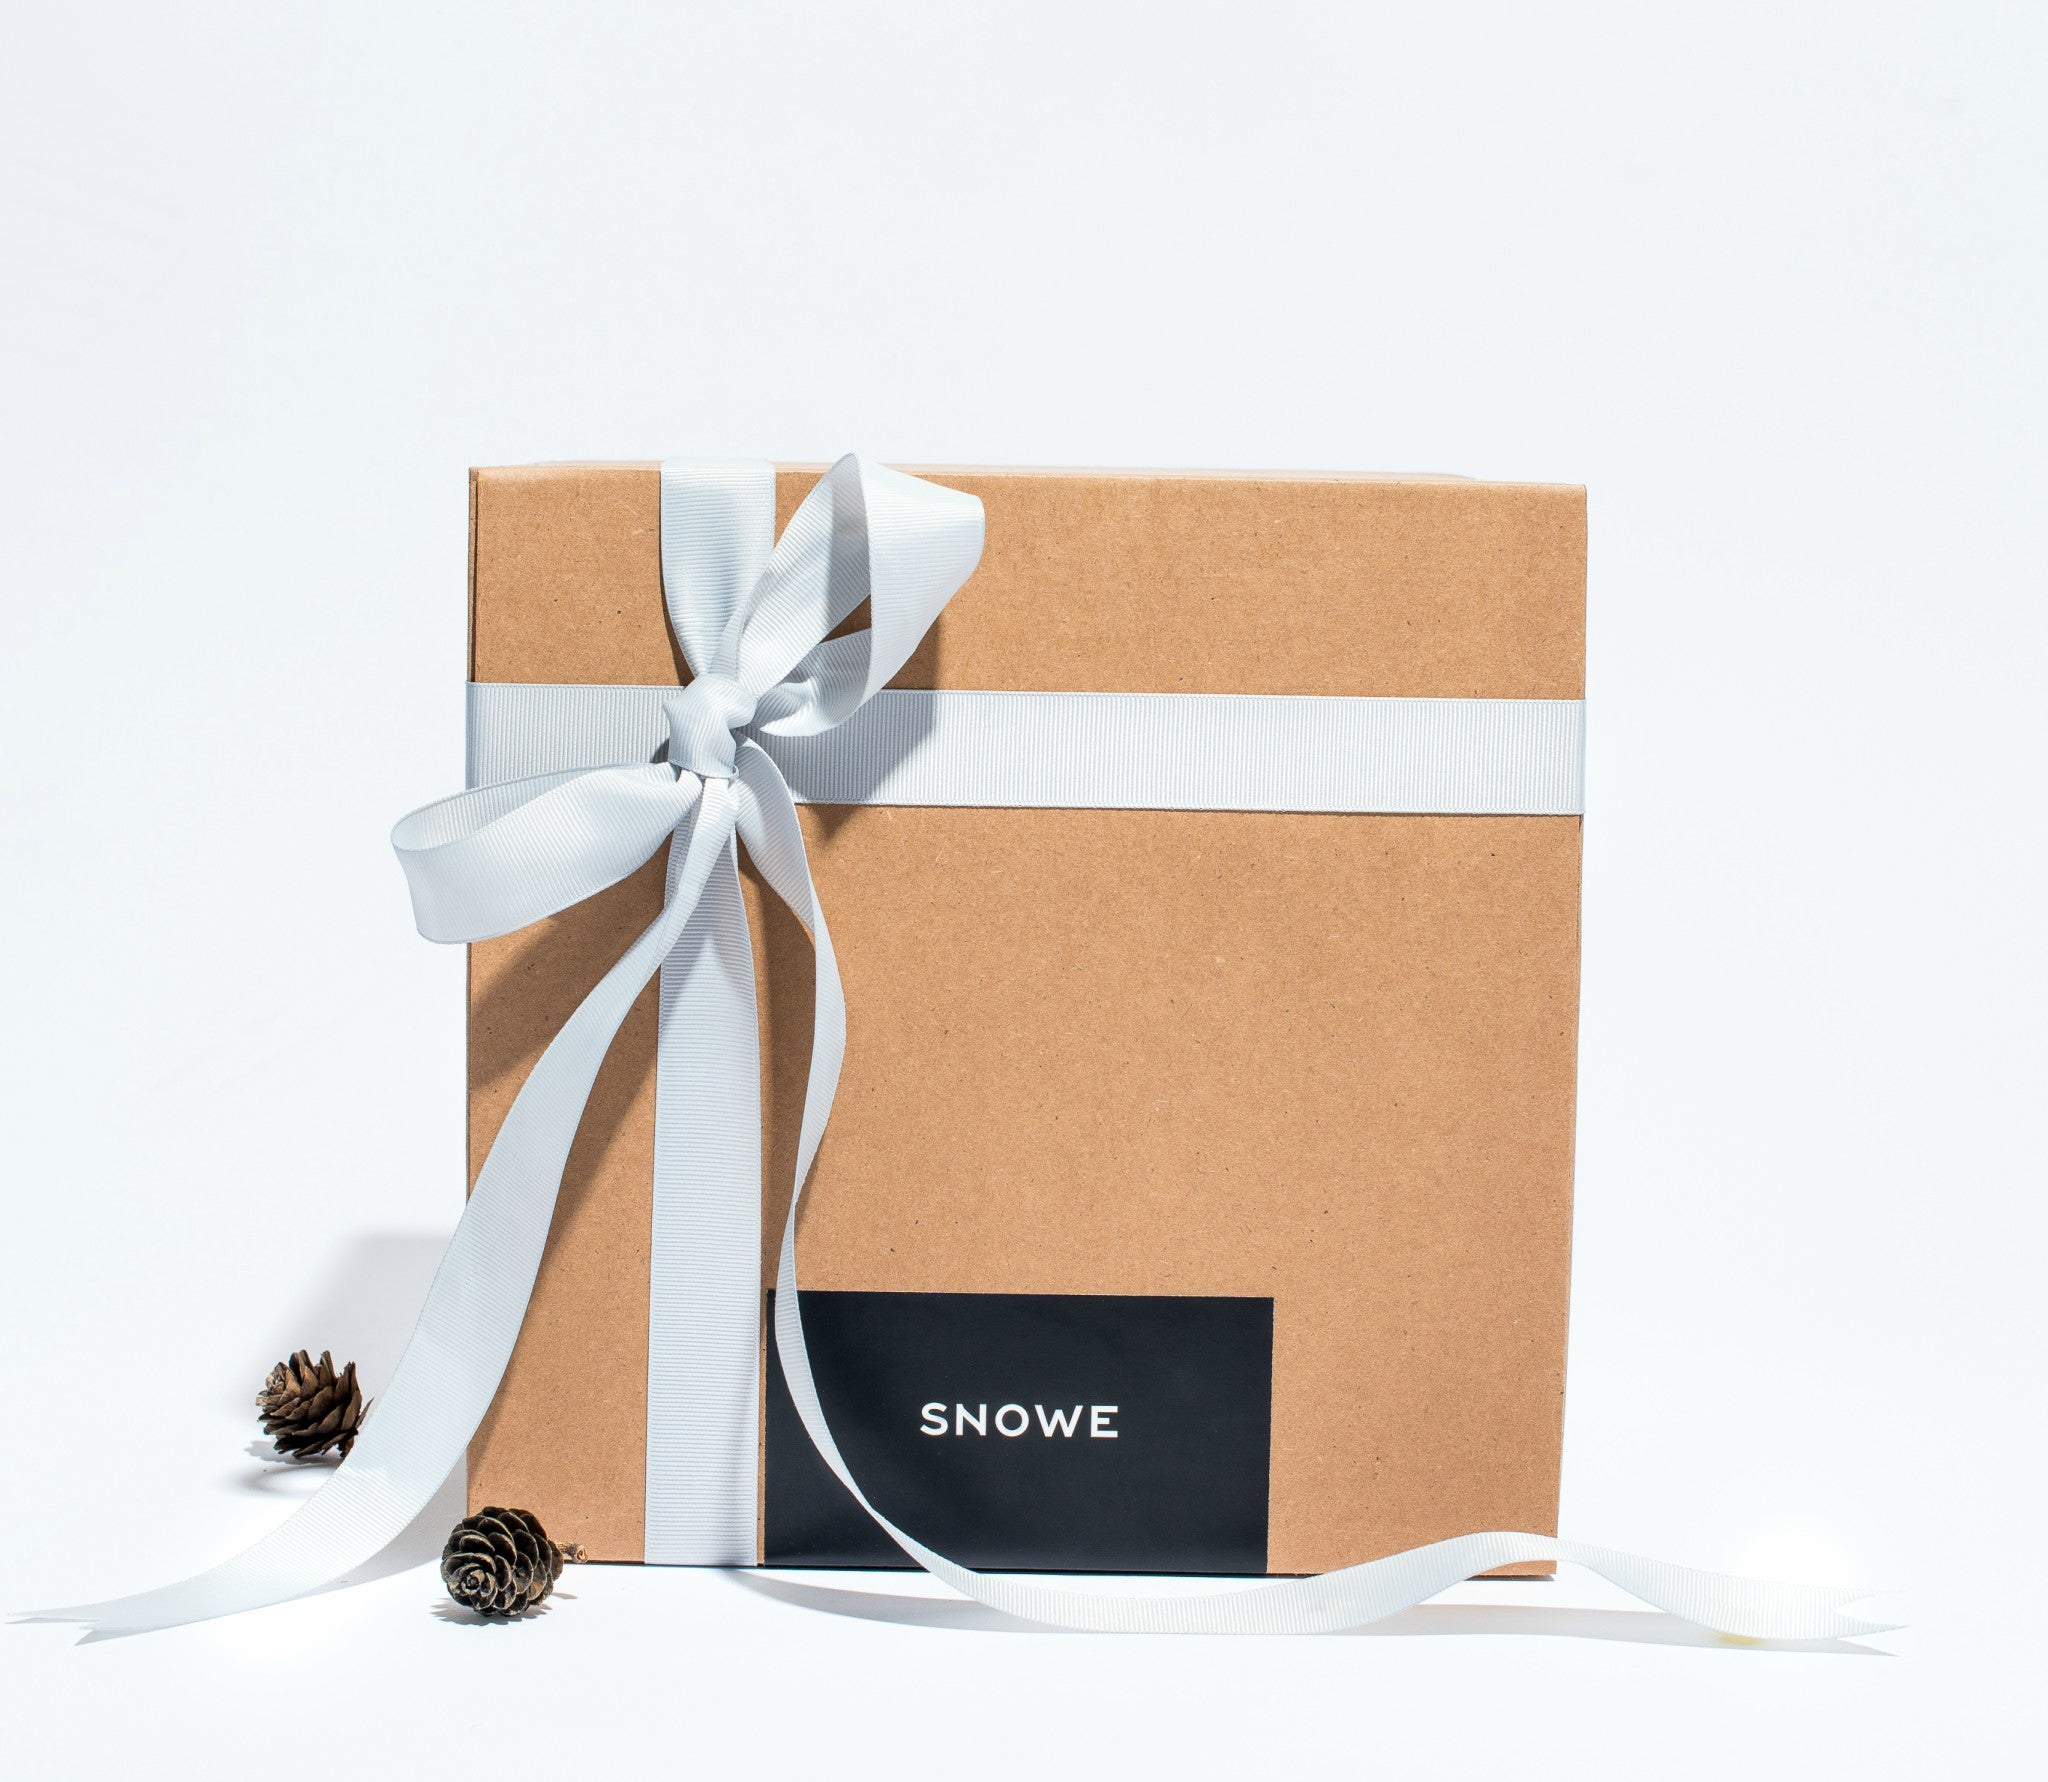 Snowe's Holiday Gift Guide